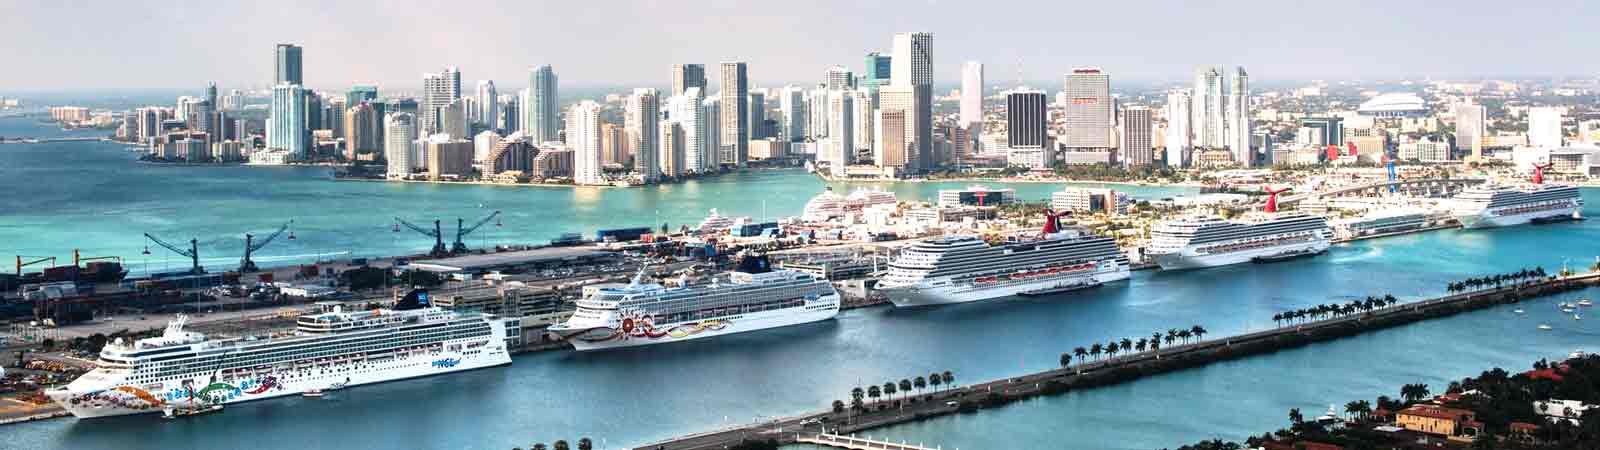 Miami Cruise Port Guide Overview 2020 Iqcruising